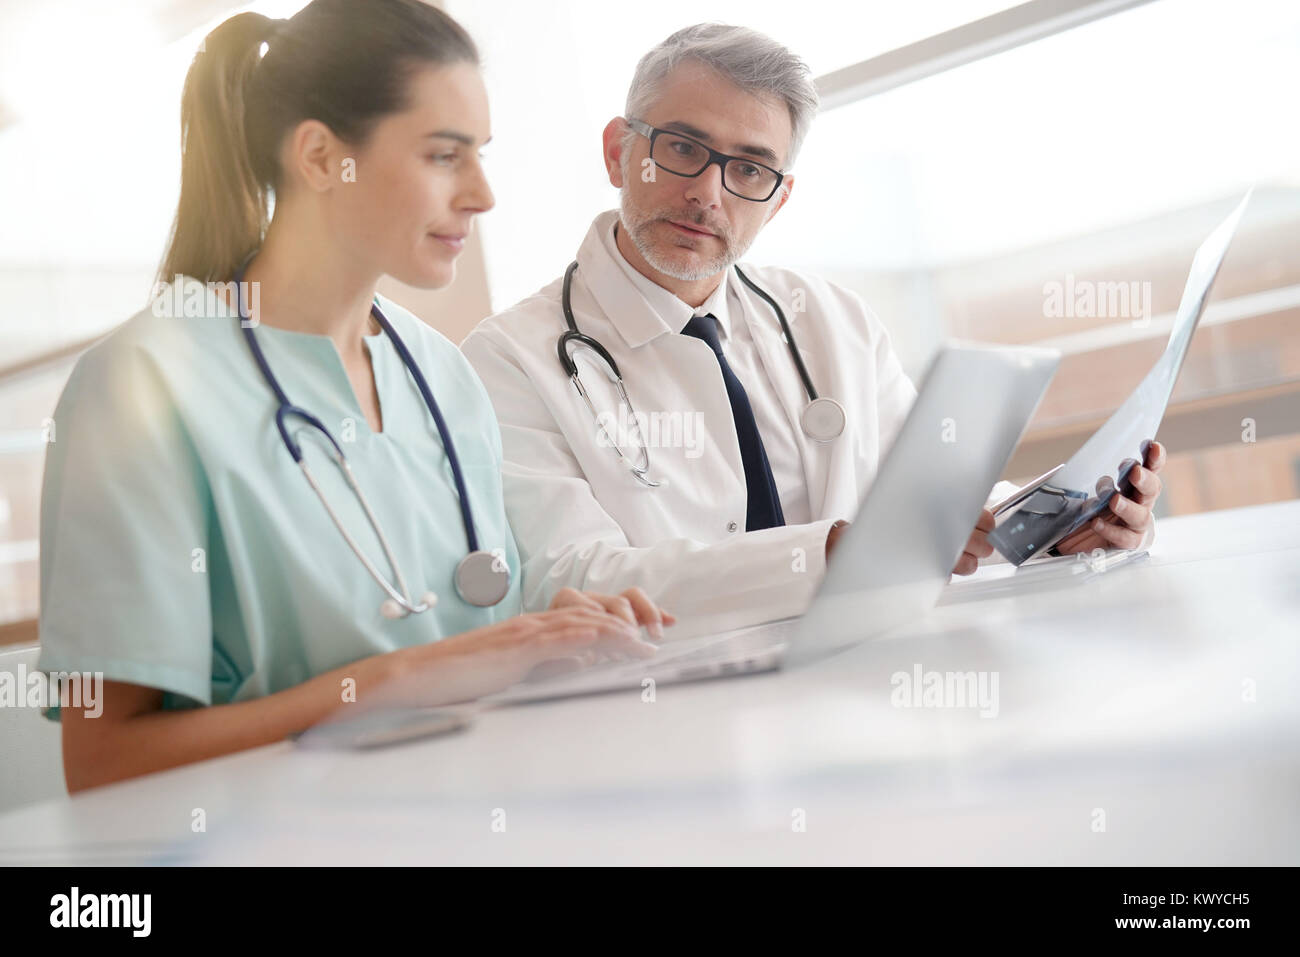 Doctor and nurse in office working on medical report Stock Photo